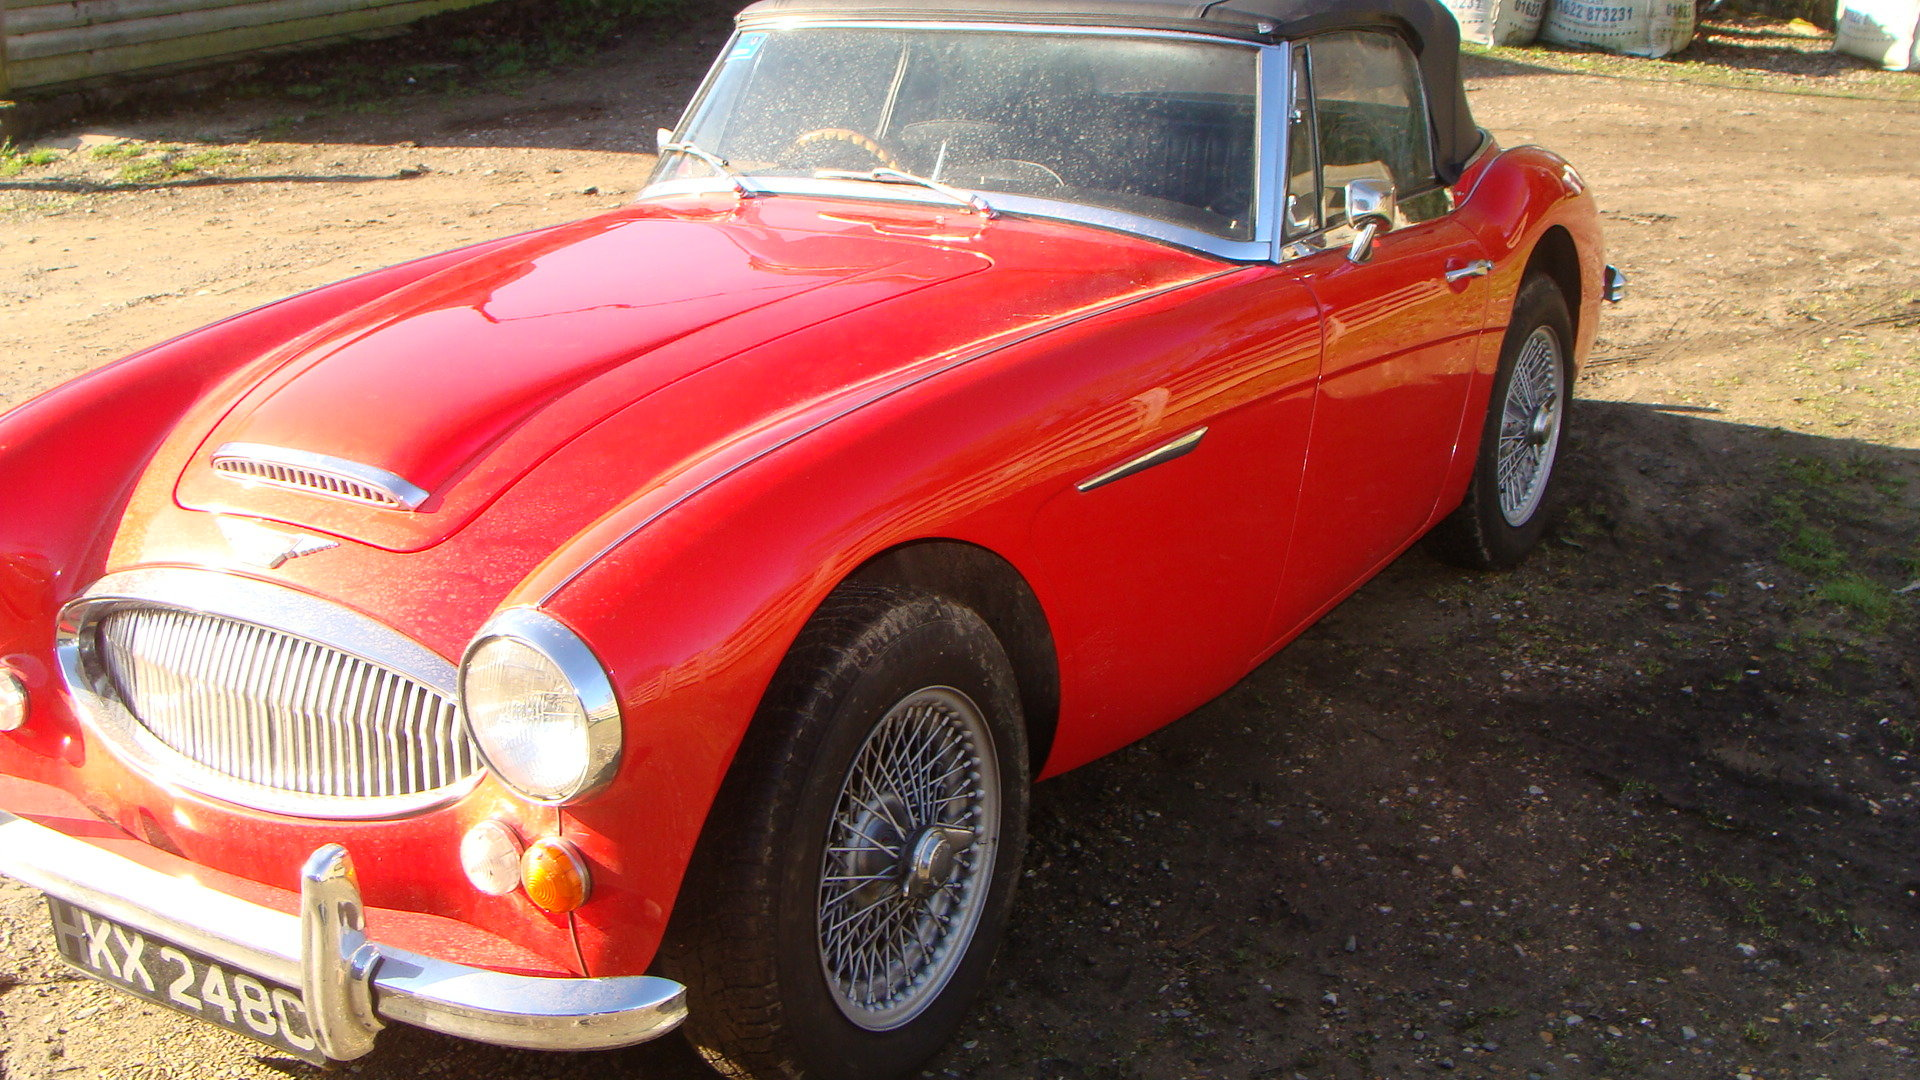 1965 Austin Healey 3000 Mk 111 BJ8 For Sale (picture 4 of 6)